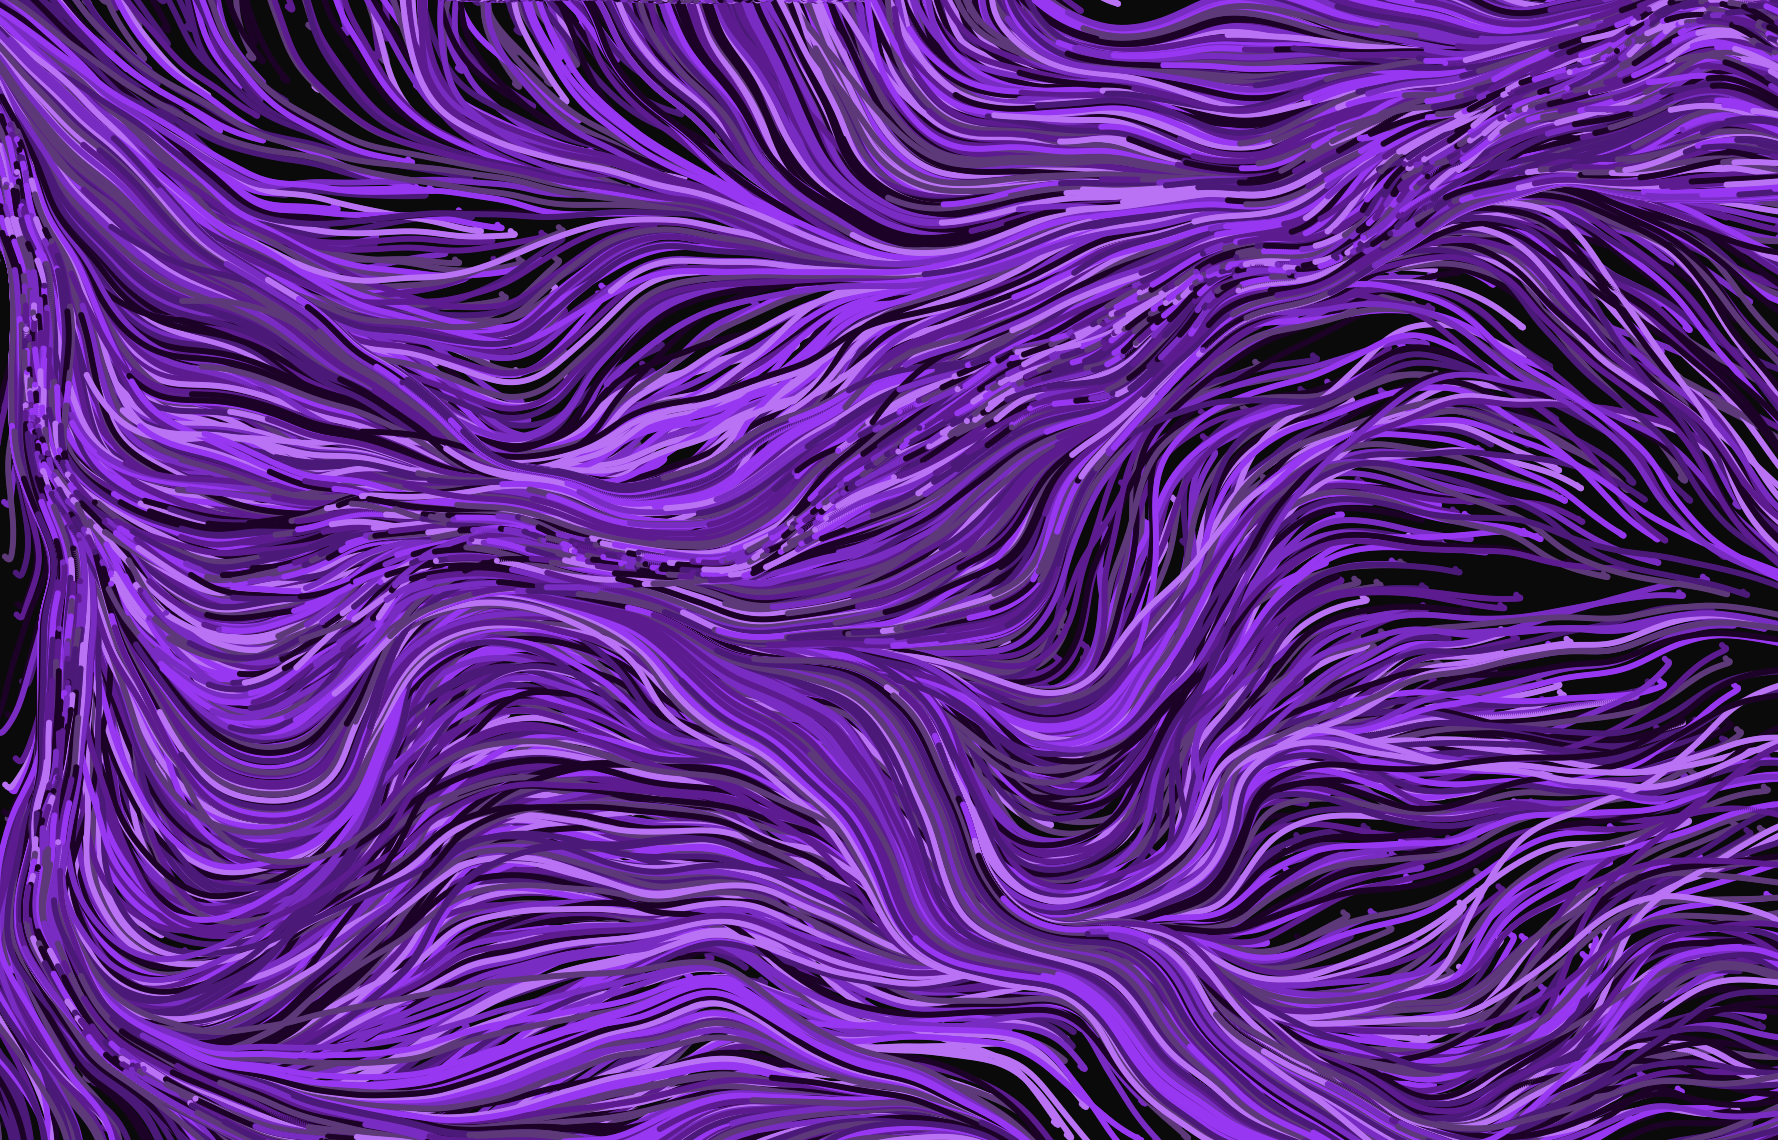 zoomed out, flowy lines